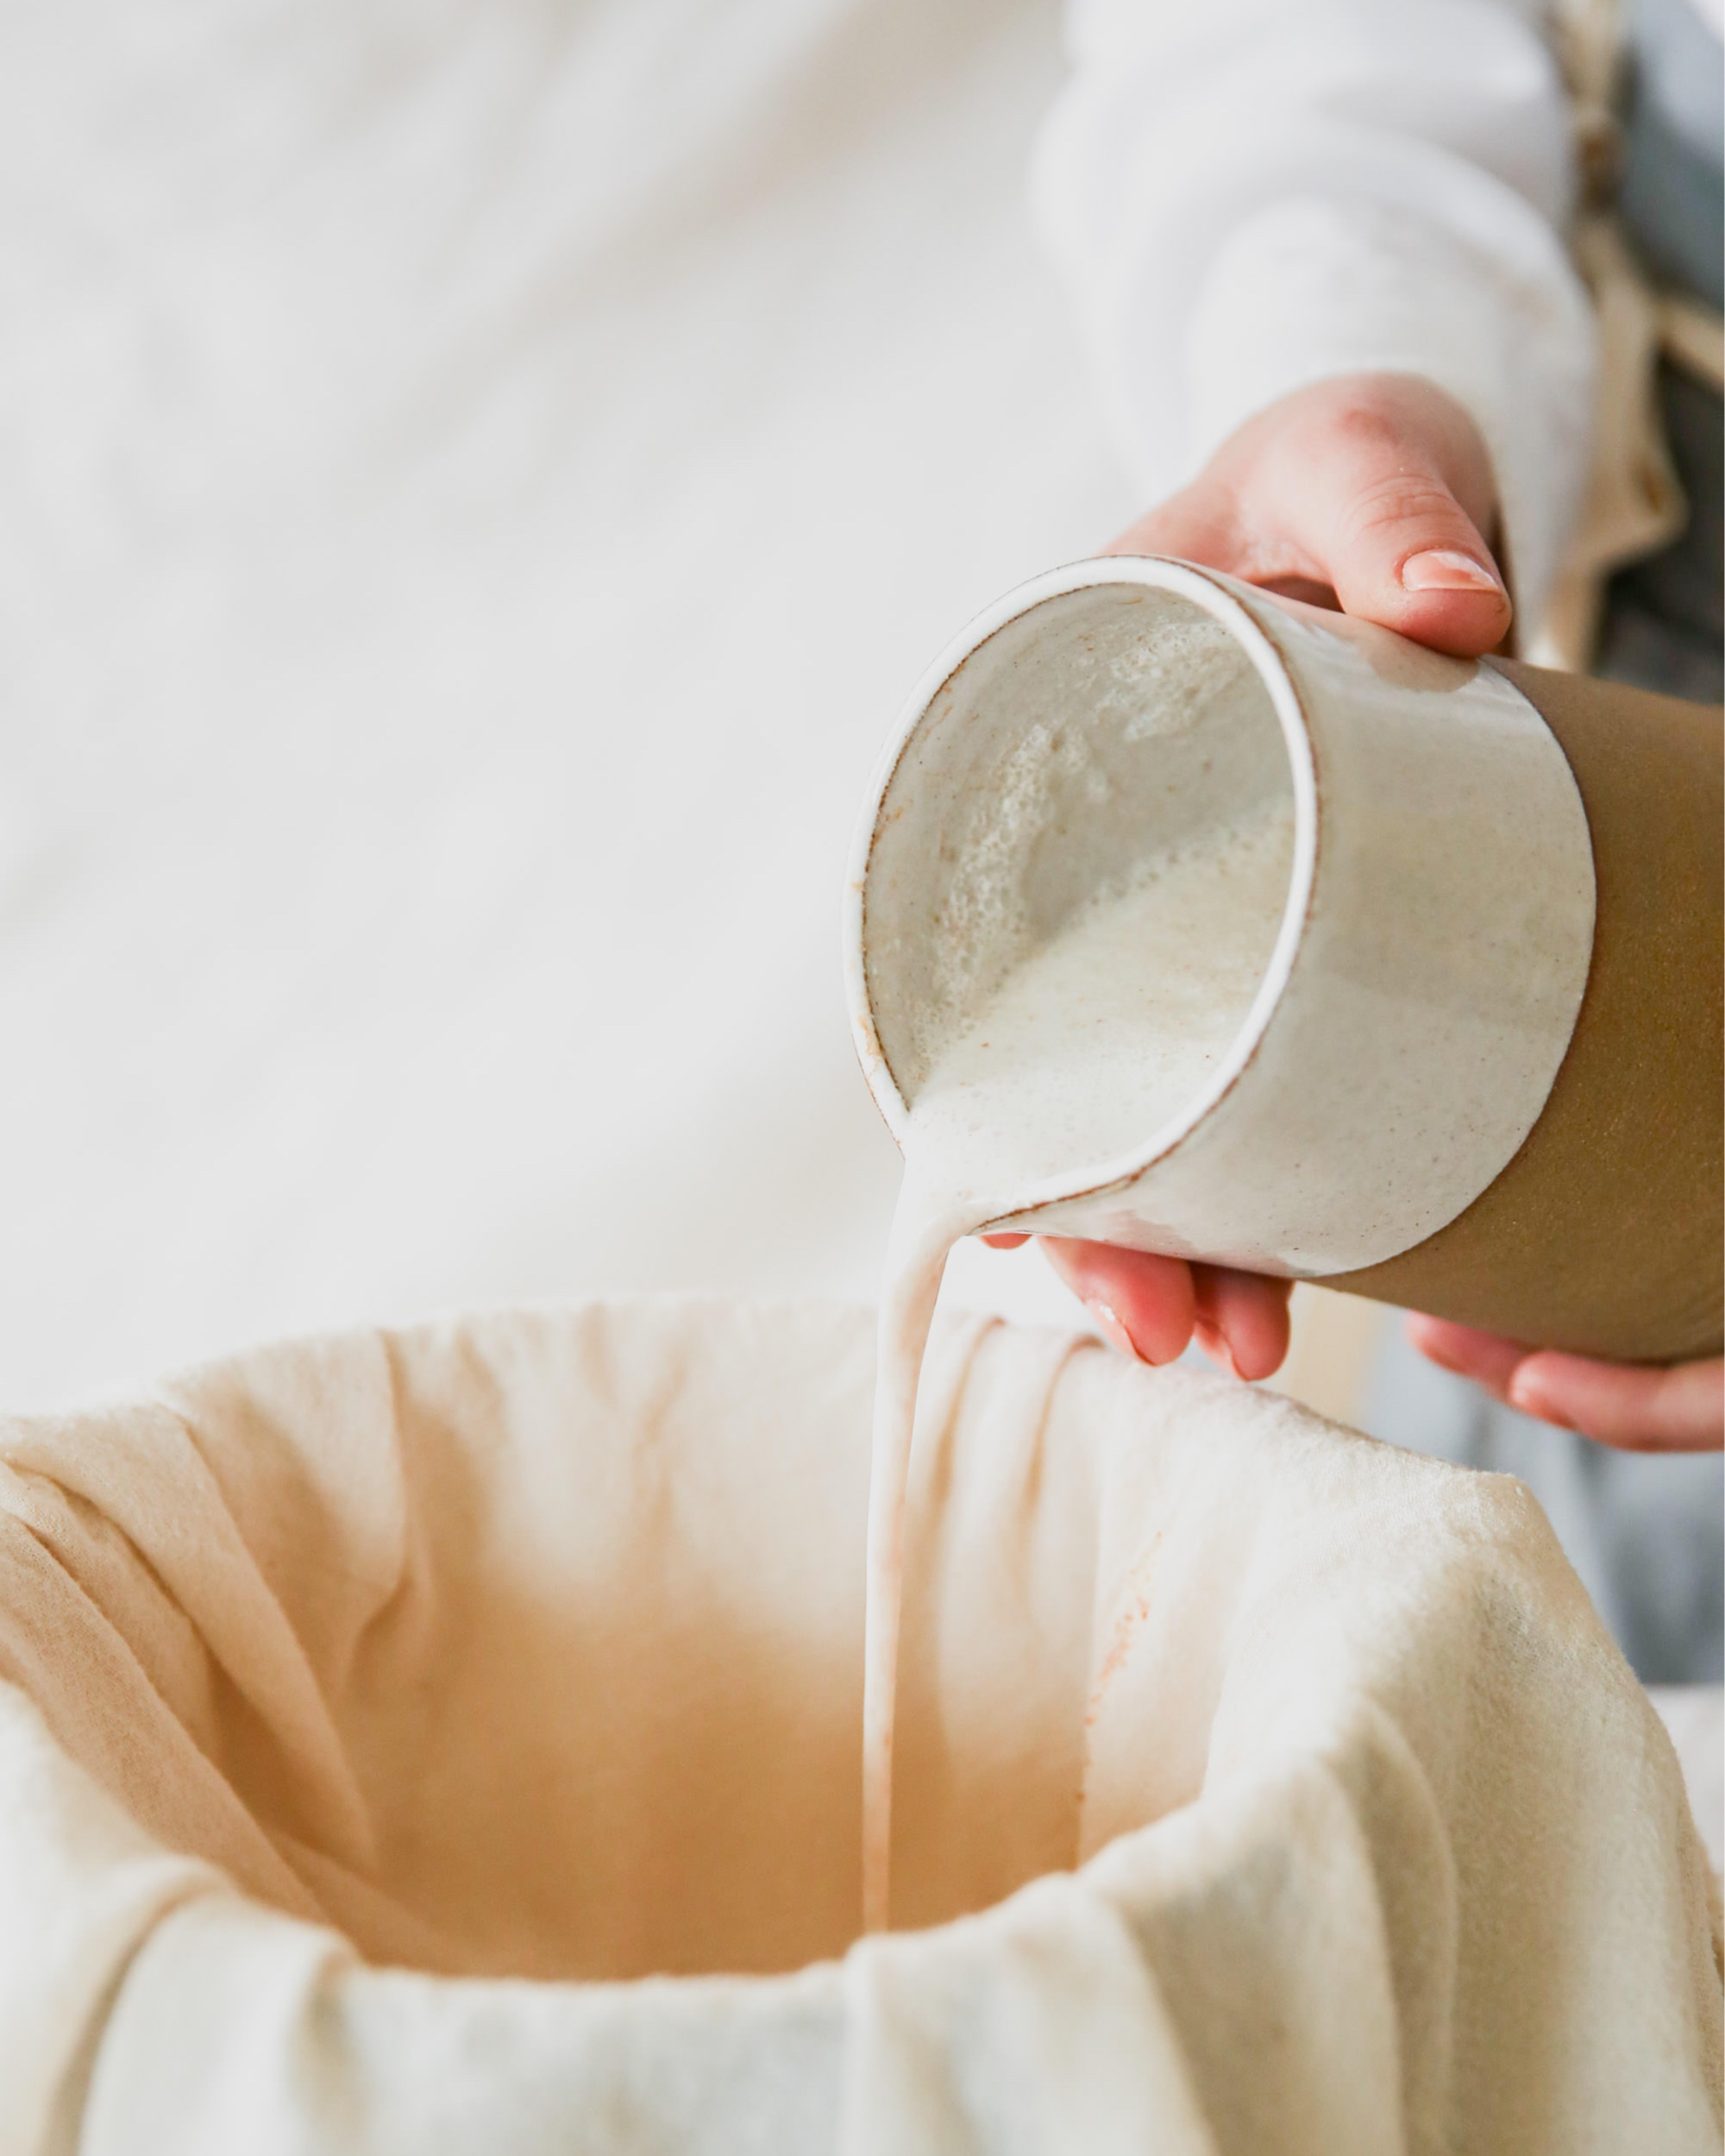 Pouring+Blended+Almond+Milk+Into+Cheesecloth